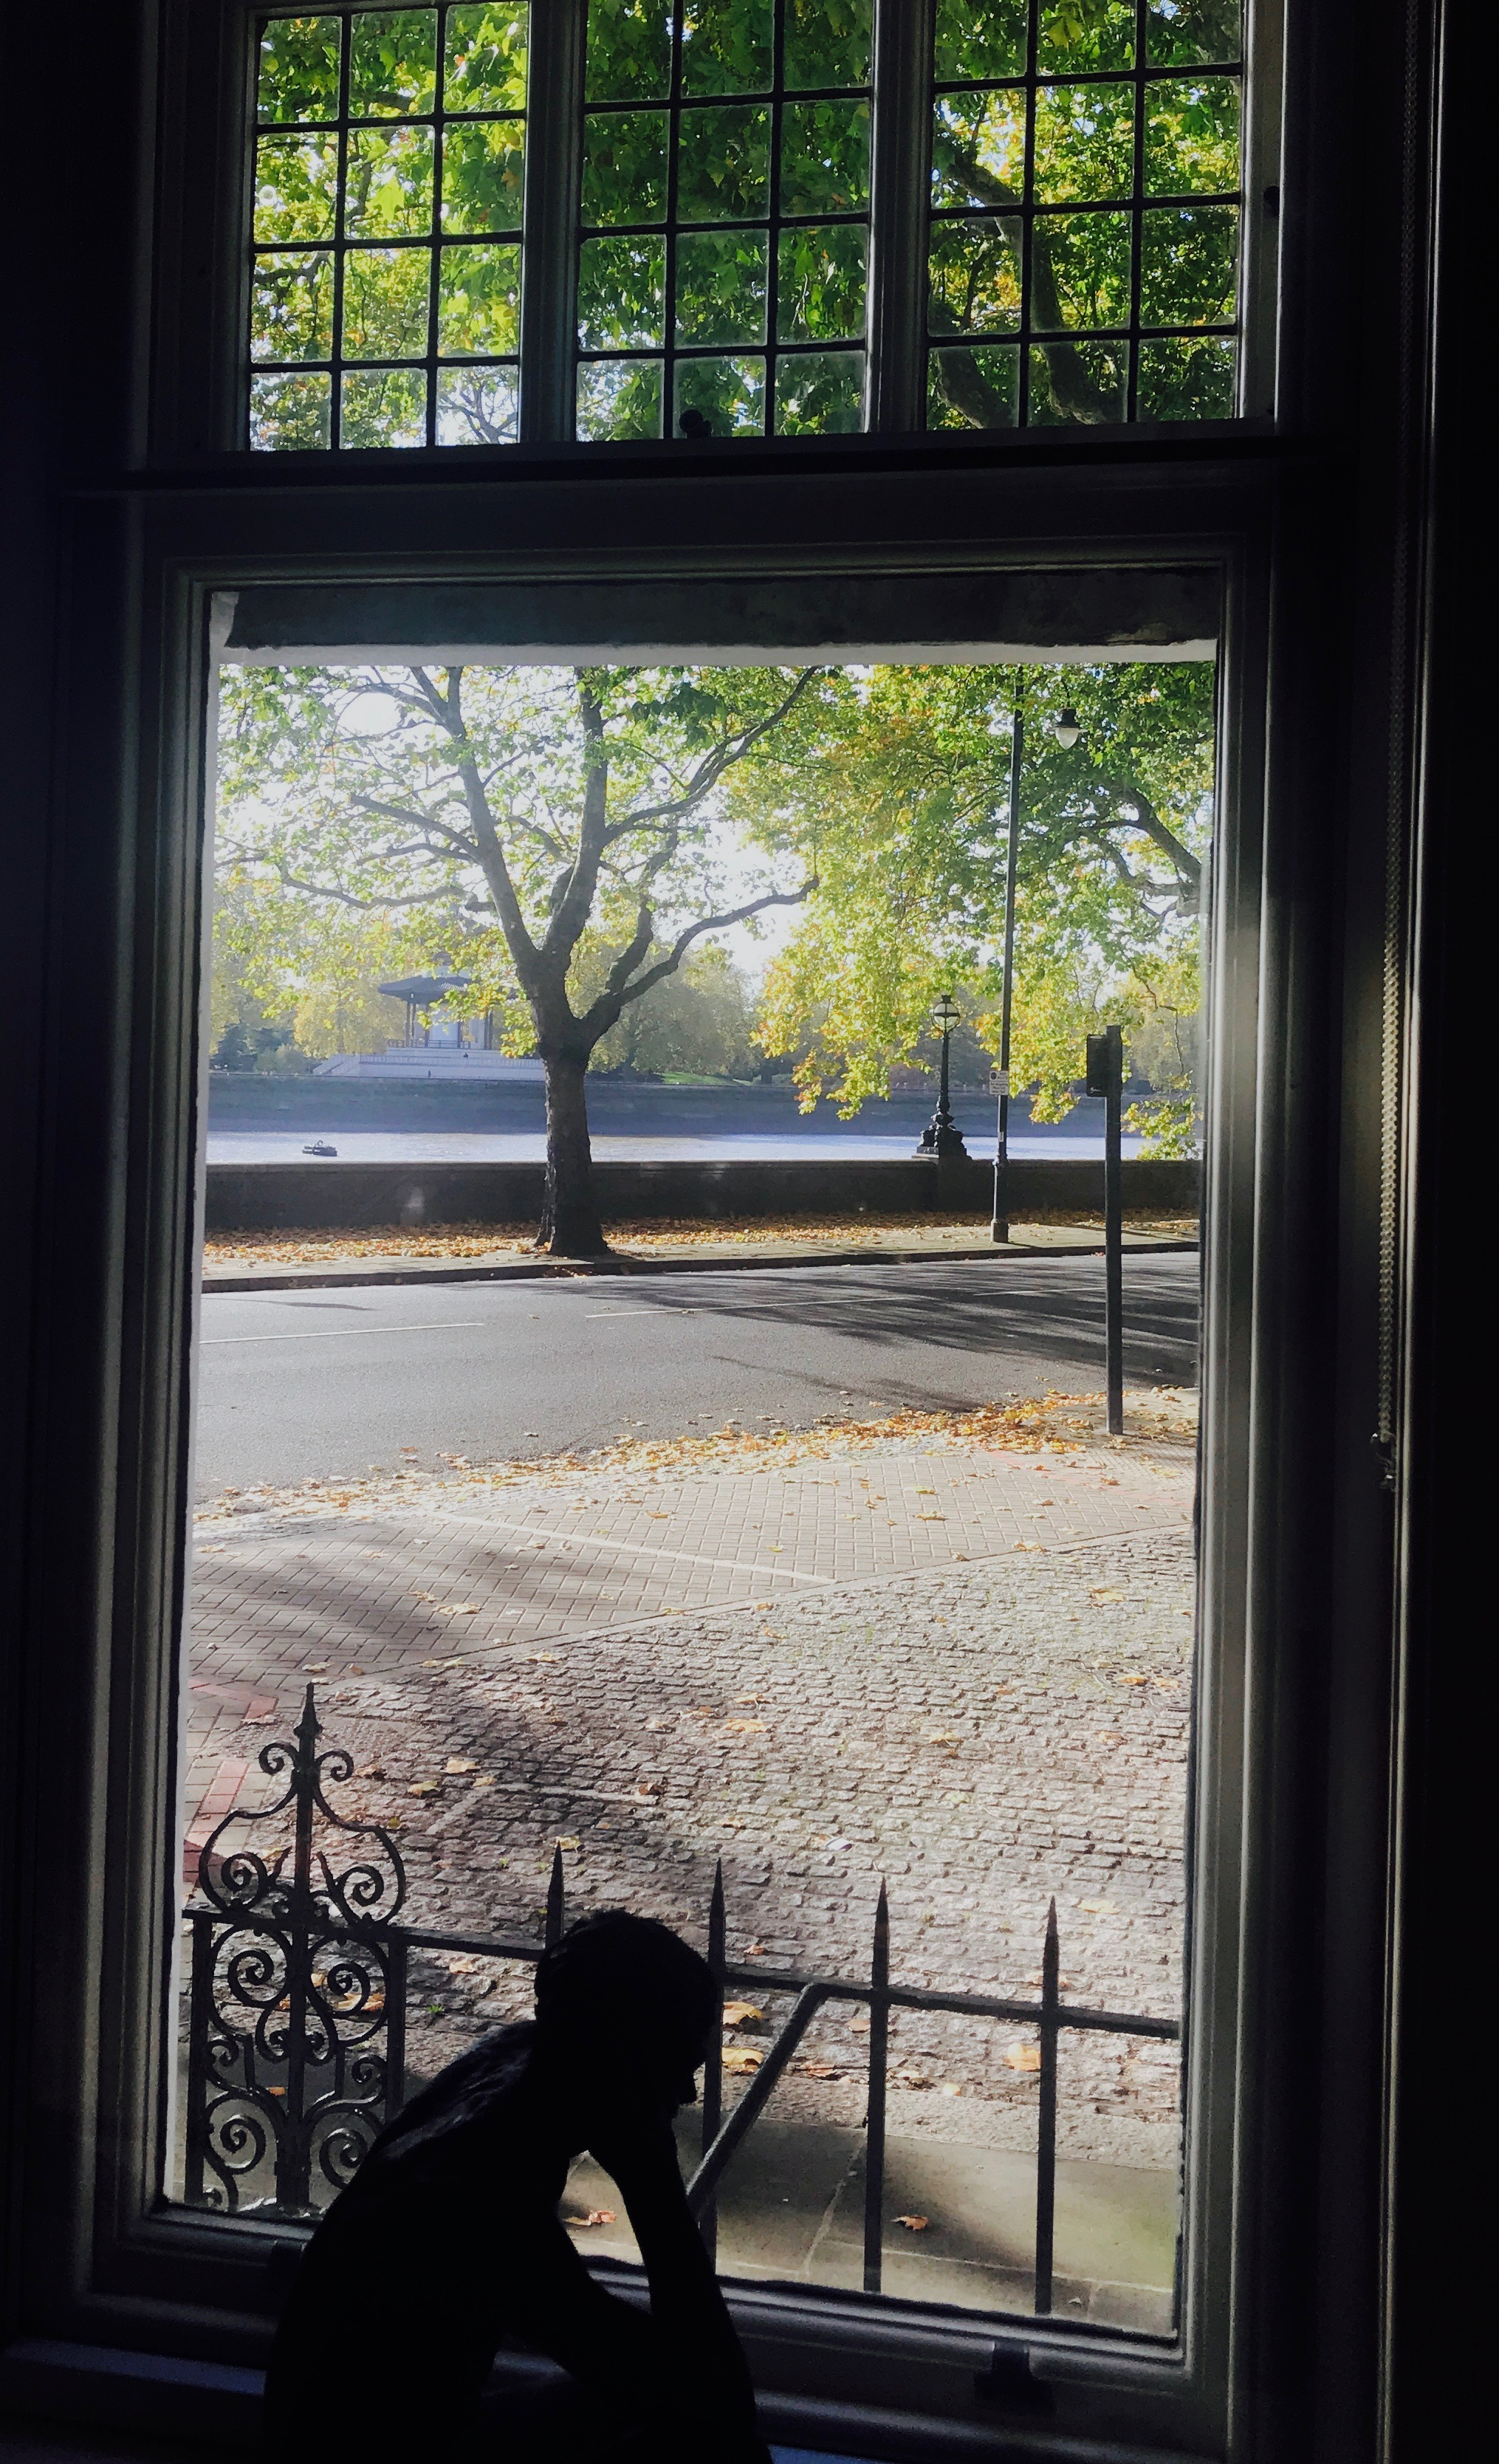 13embankment-window-view.jpg